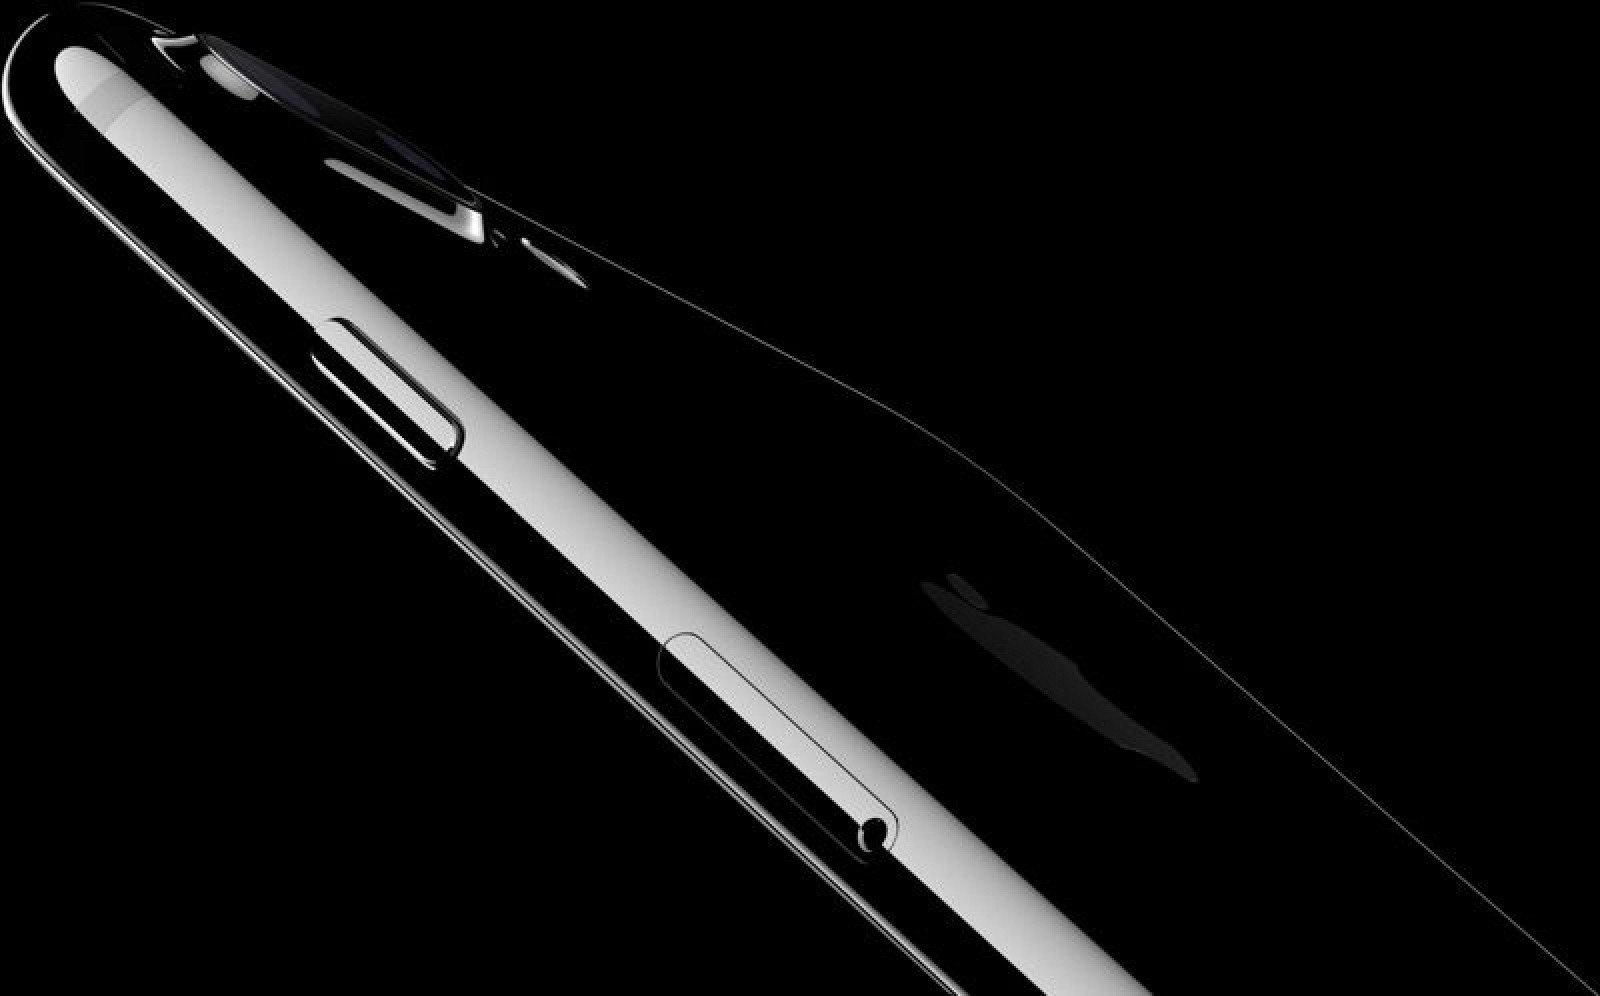 iphone7jetblackdesign-800x498